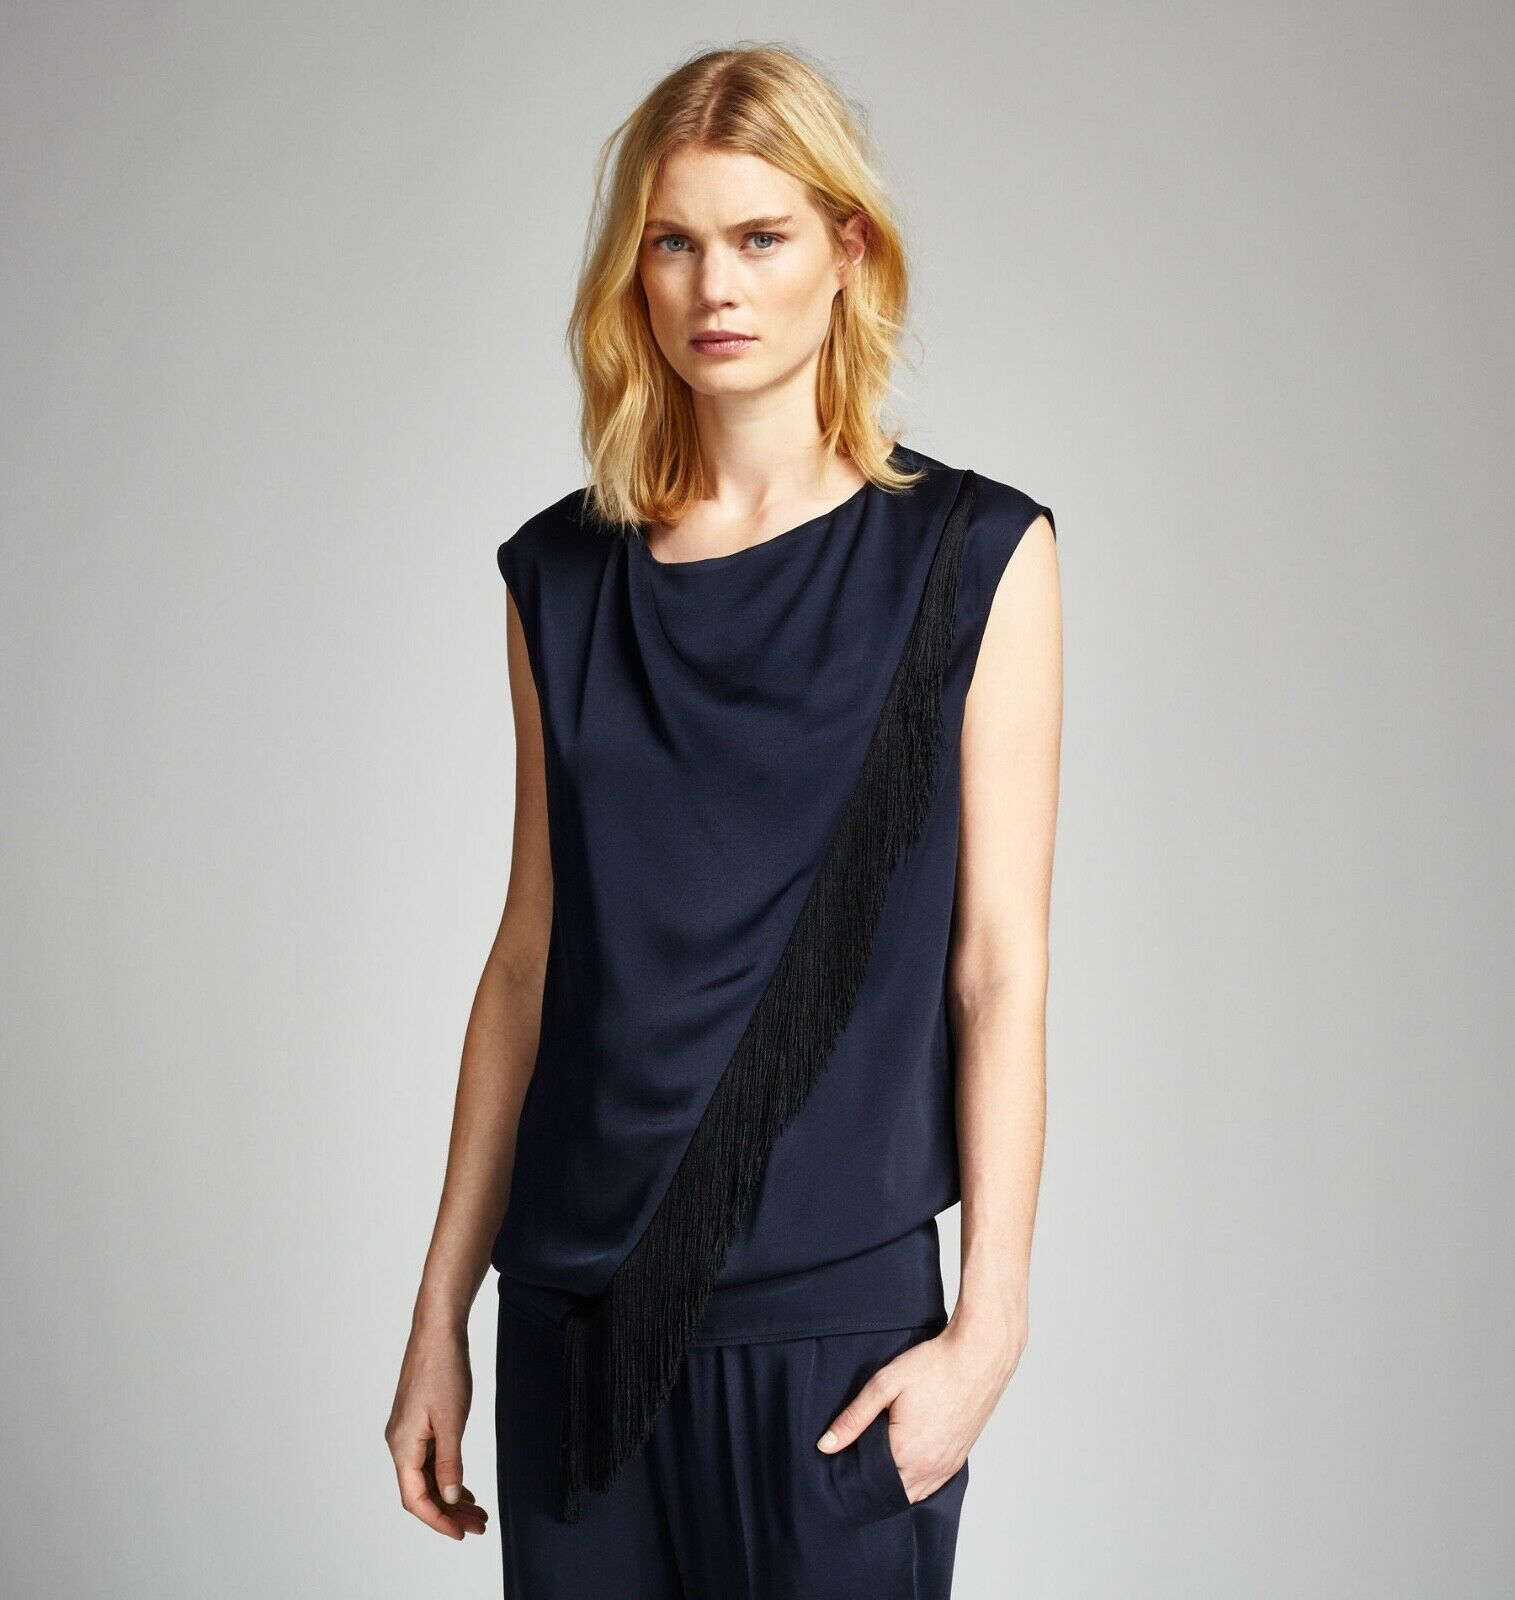 NEW  BELSTAFF 'Lana' Fringe Detail Sleeveless Satin Top Größe 36 IT  4 US